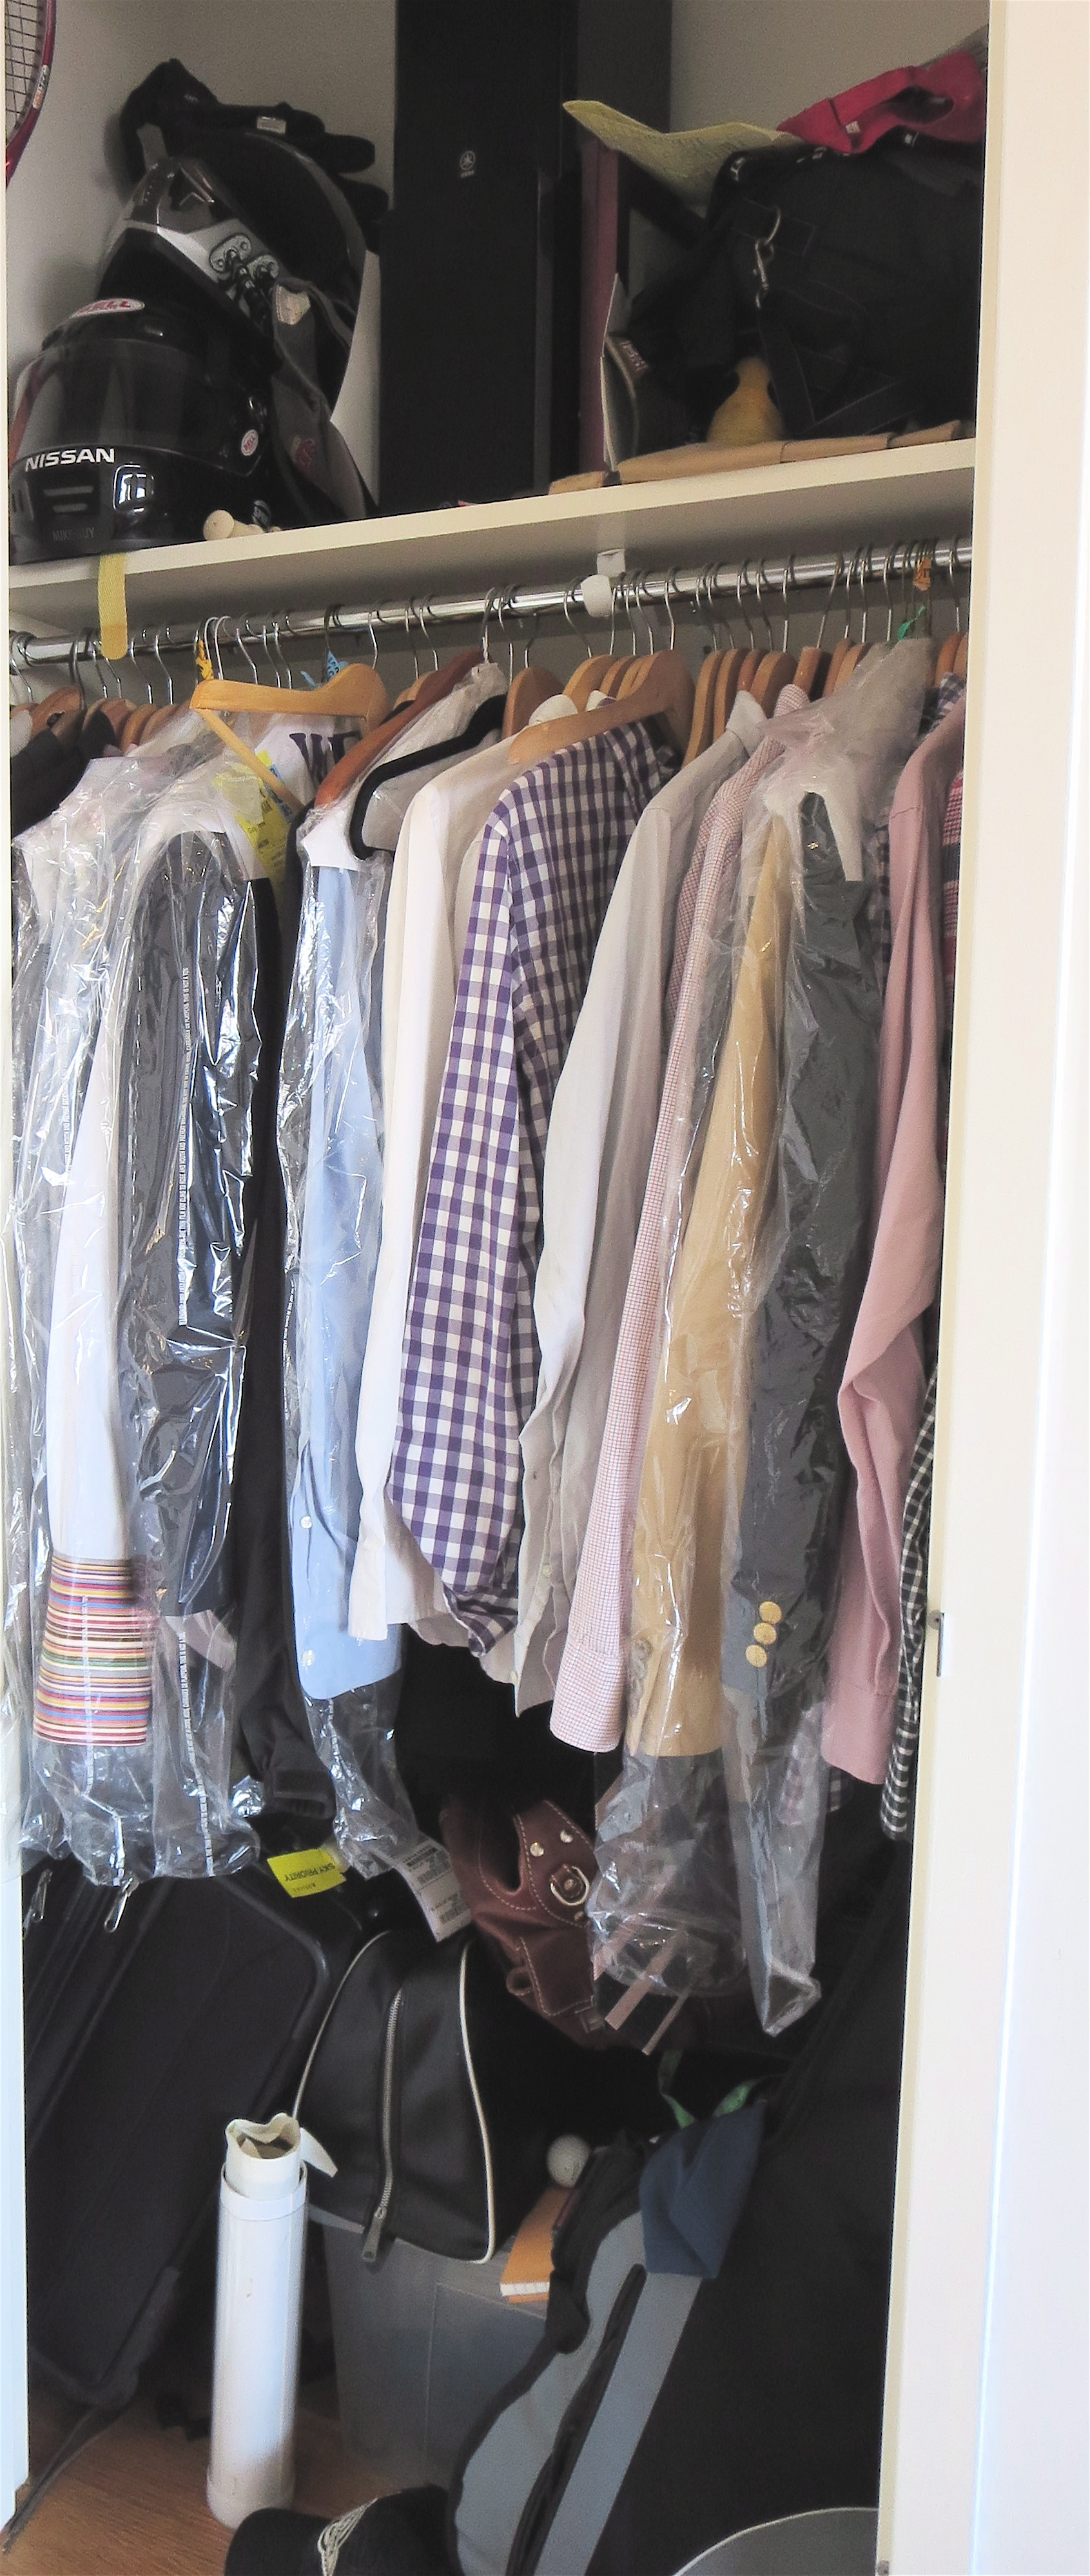 This Client Just Moved Into This Rental And Wanted A Quick Inexpensive Fix  To His Clothes Closet. Hereu0027s What I Did: